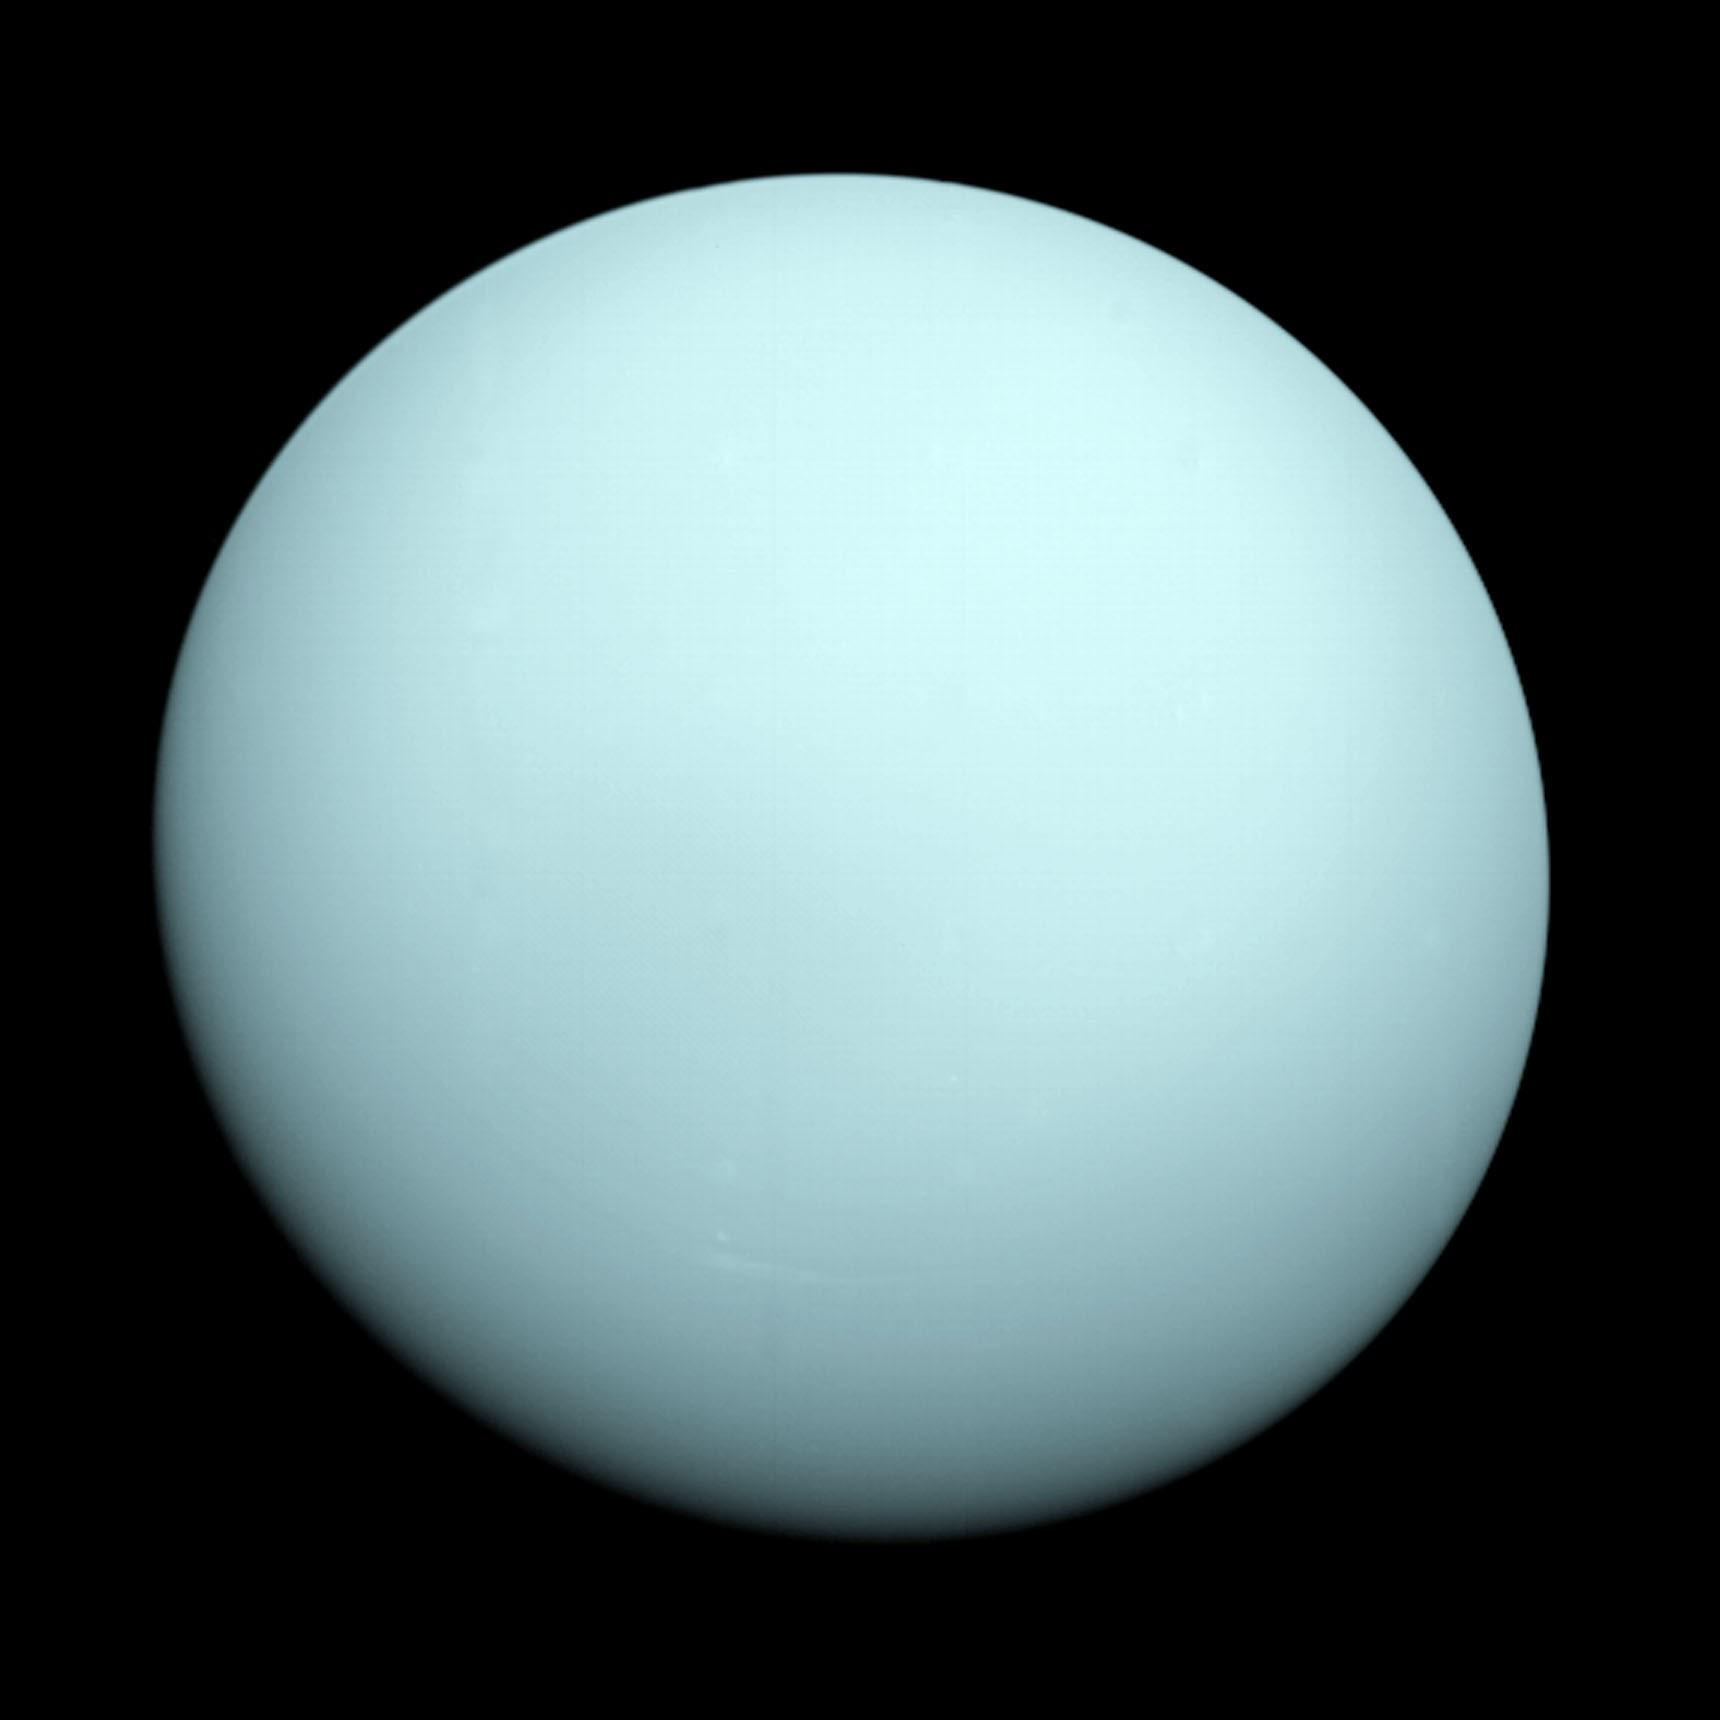 Uranus by Voyager 2 (click to enlarge)